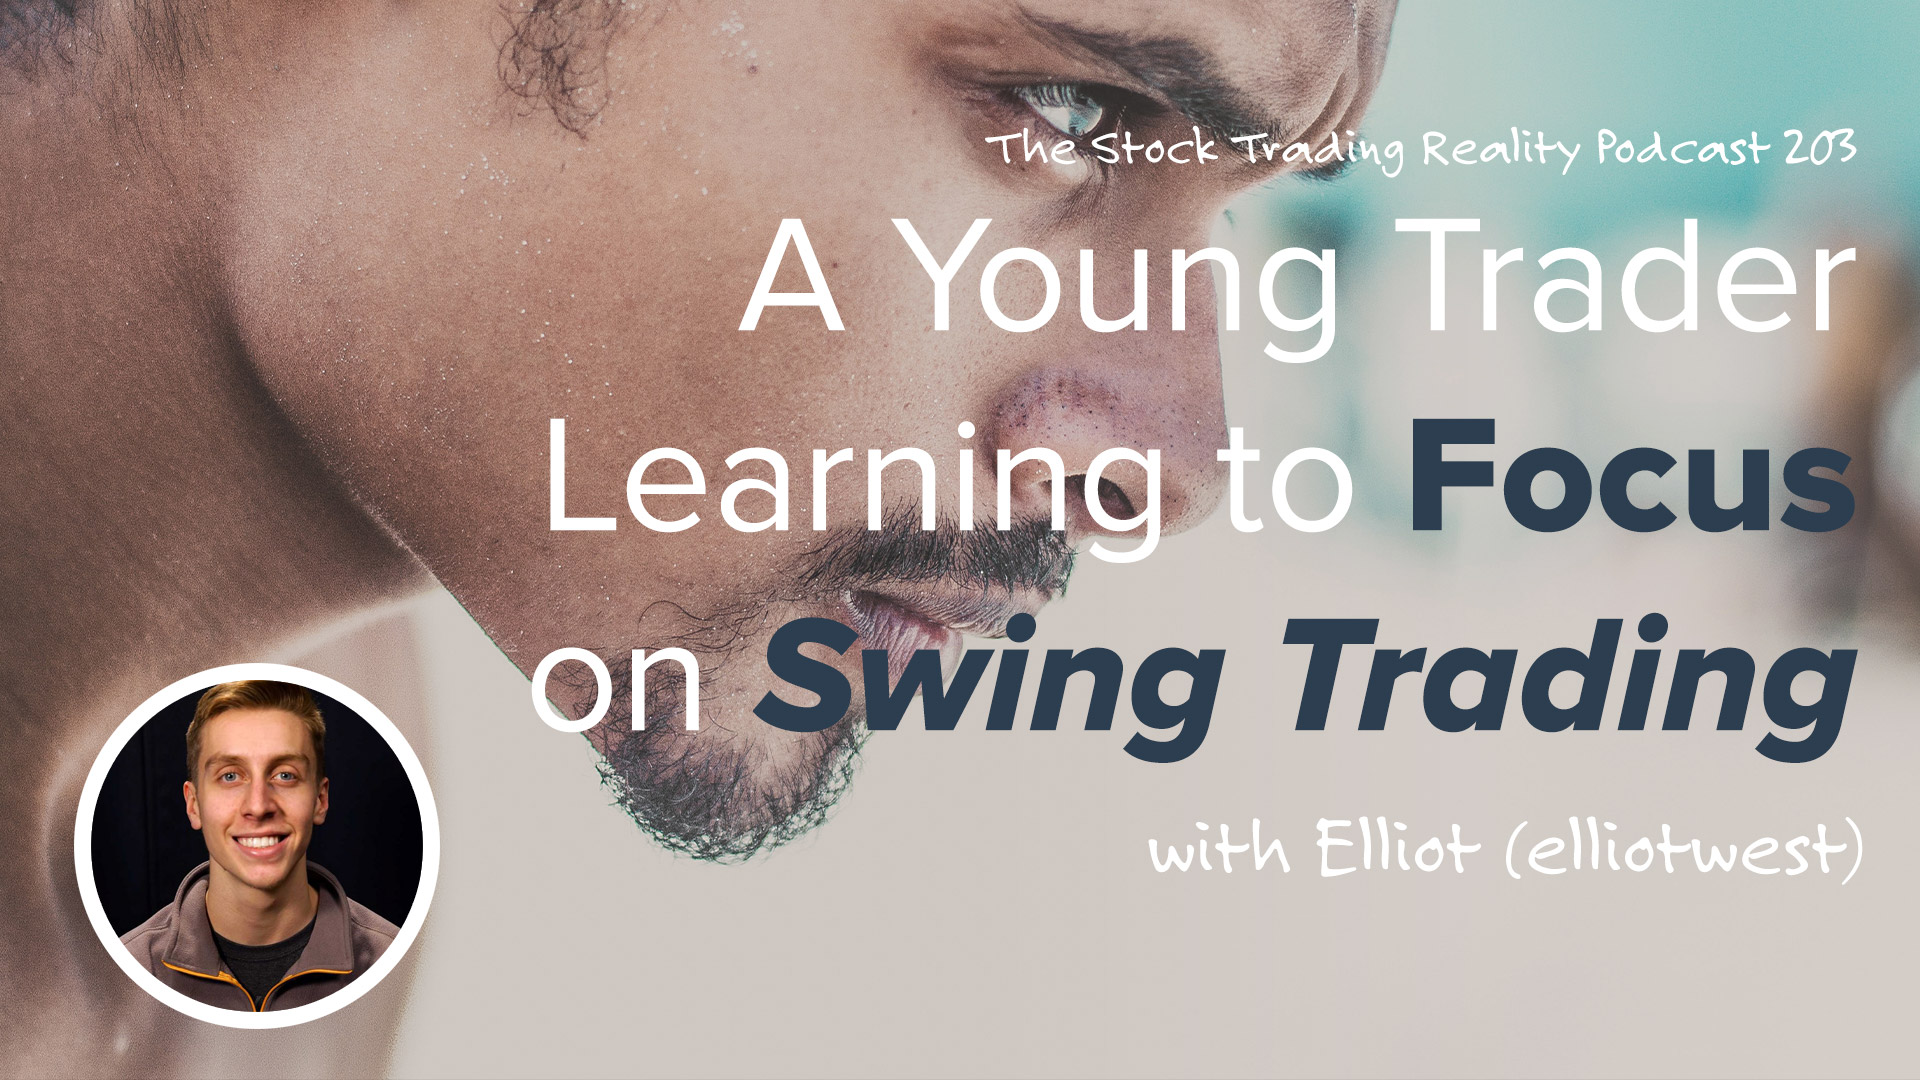 STR 203: A Young Trader Learning to Focus on Swing Trading